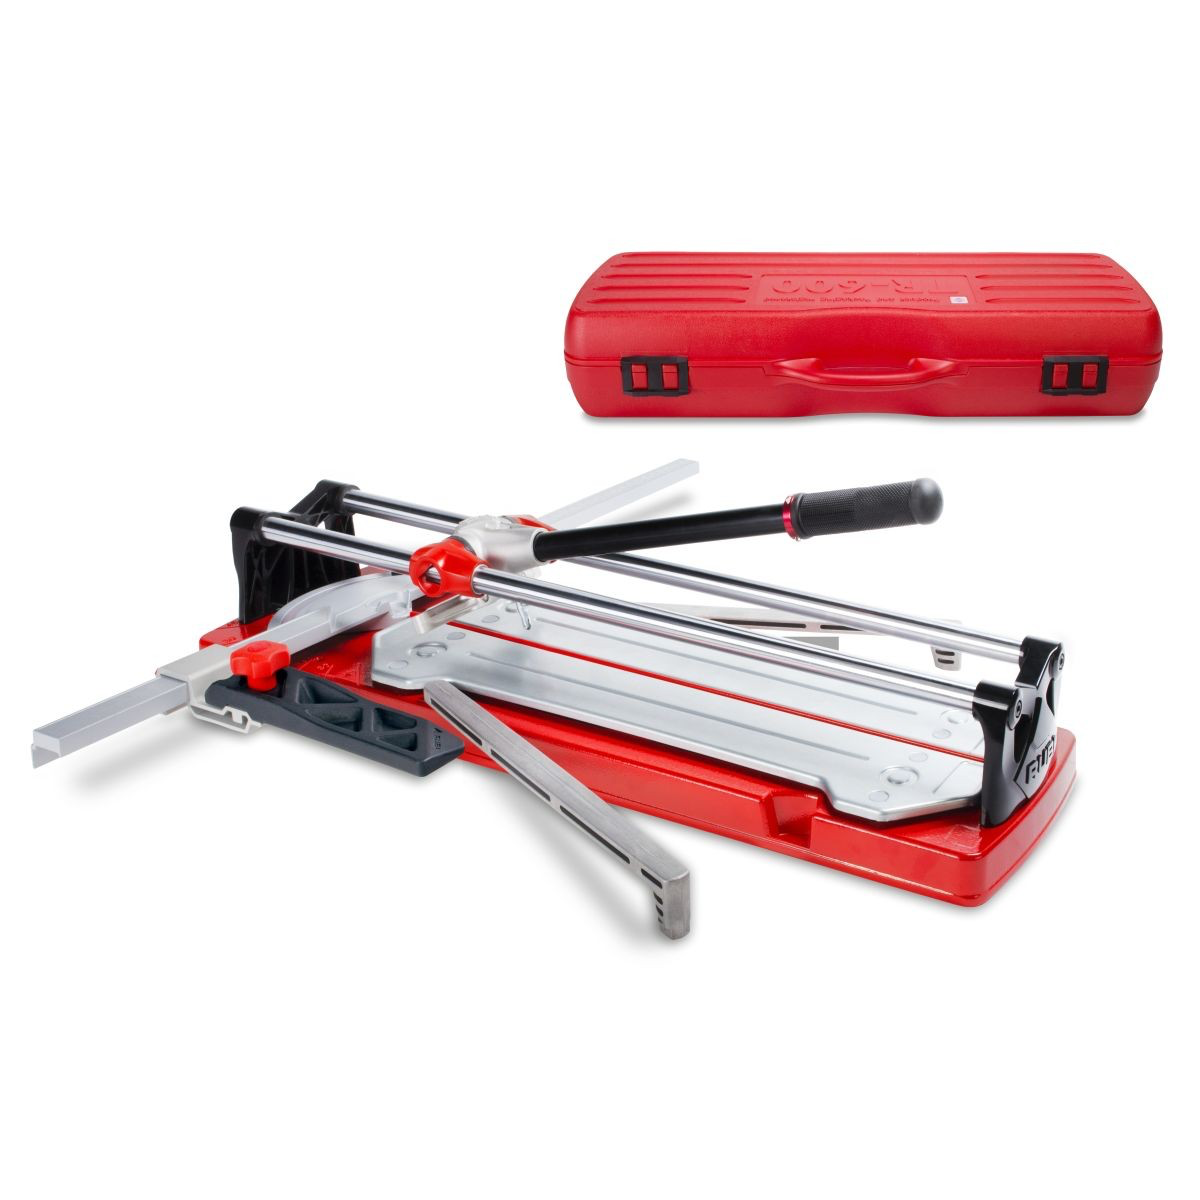 Rubi Tr 600 Magnet 24 Tile Cutter W Case Tile Cutter Grey Flooring Floor Decor